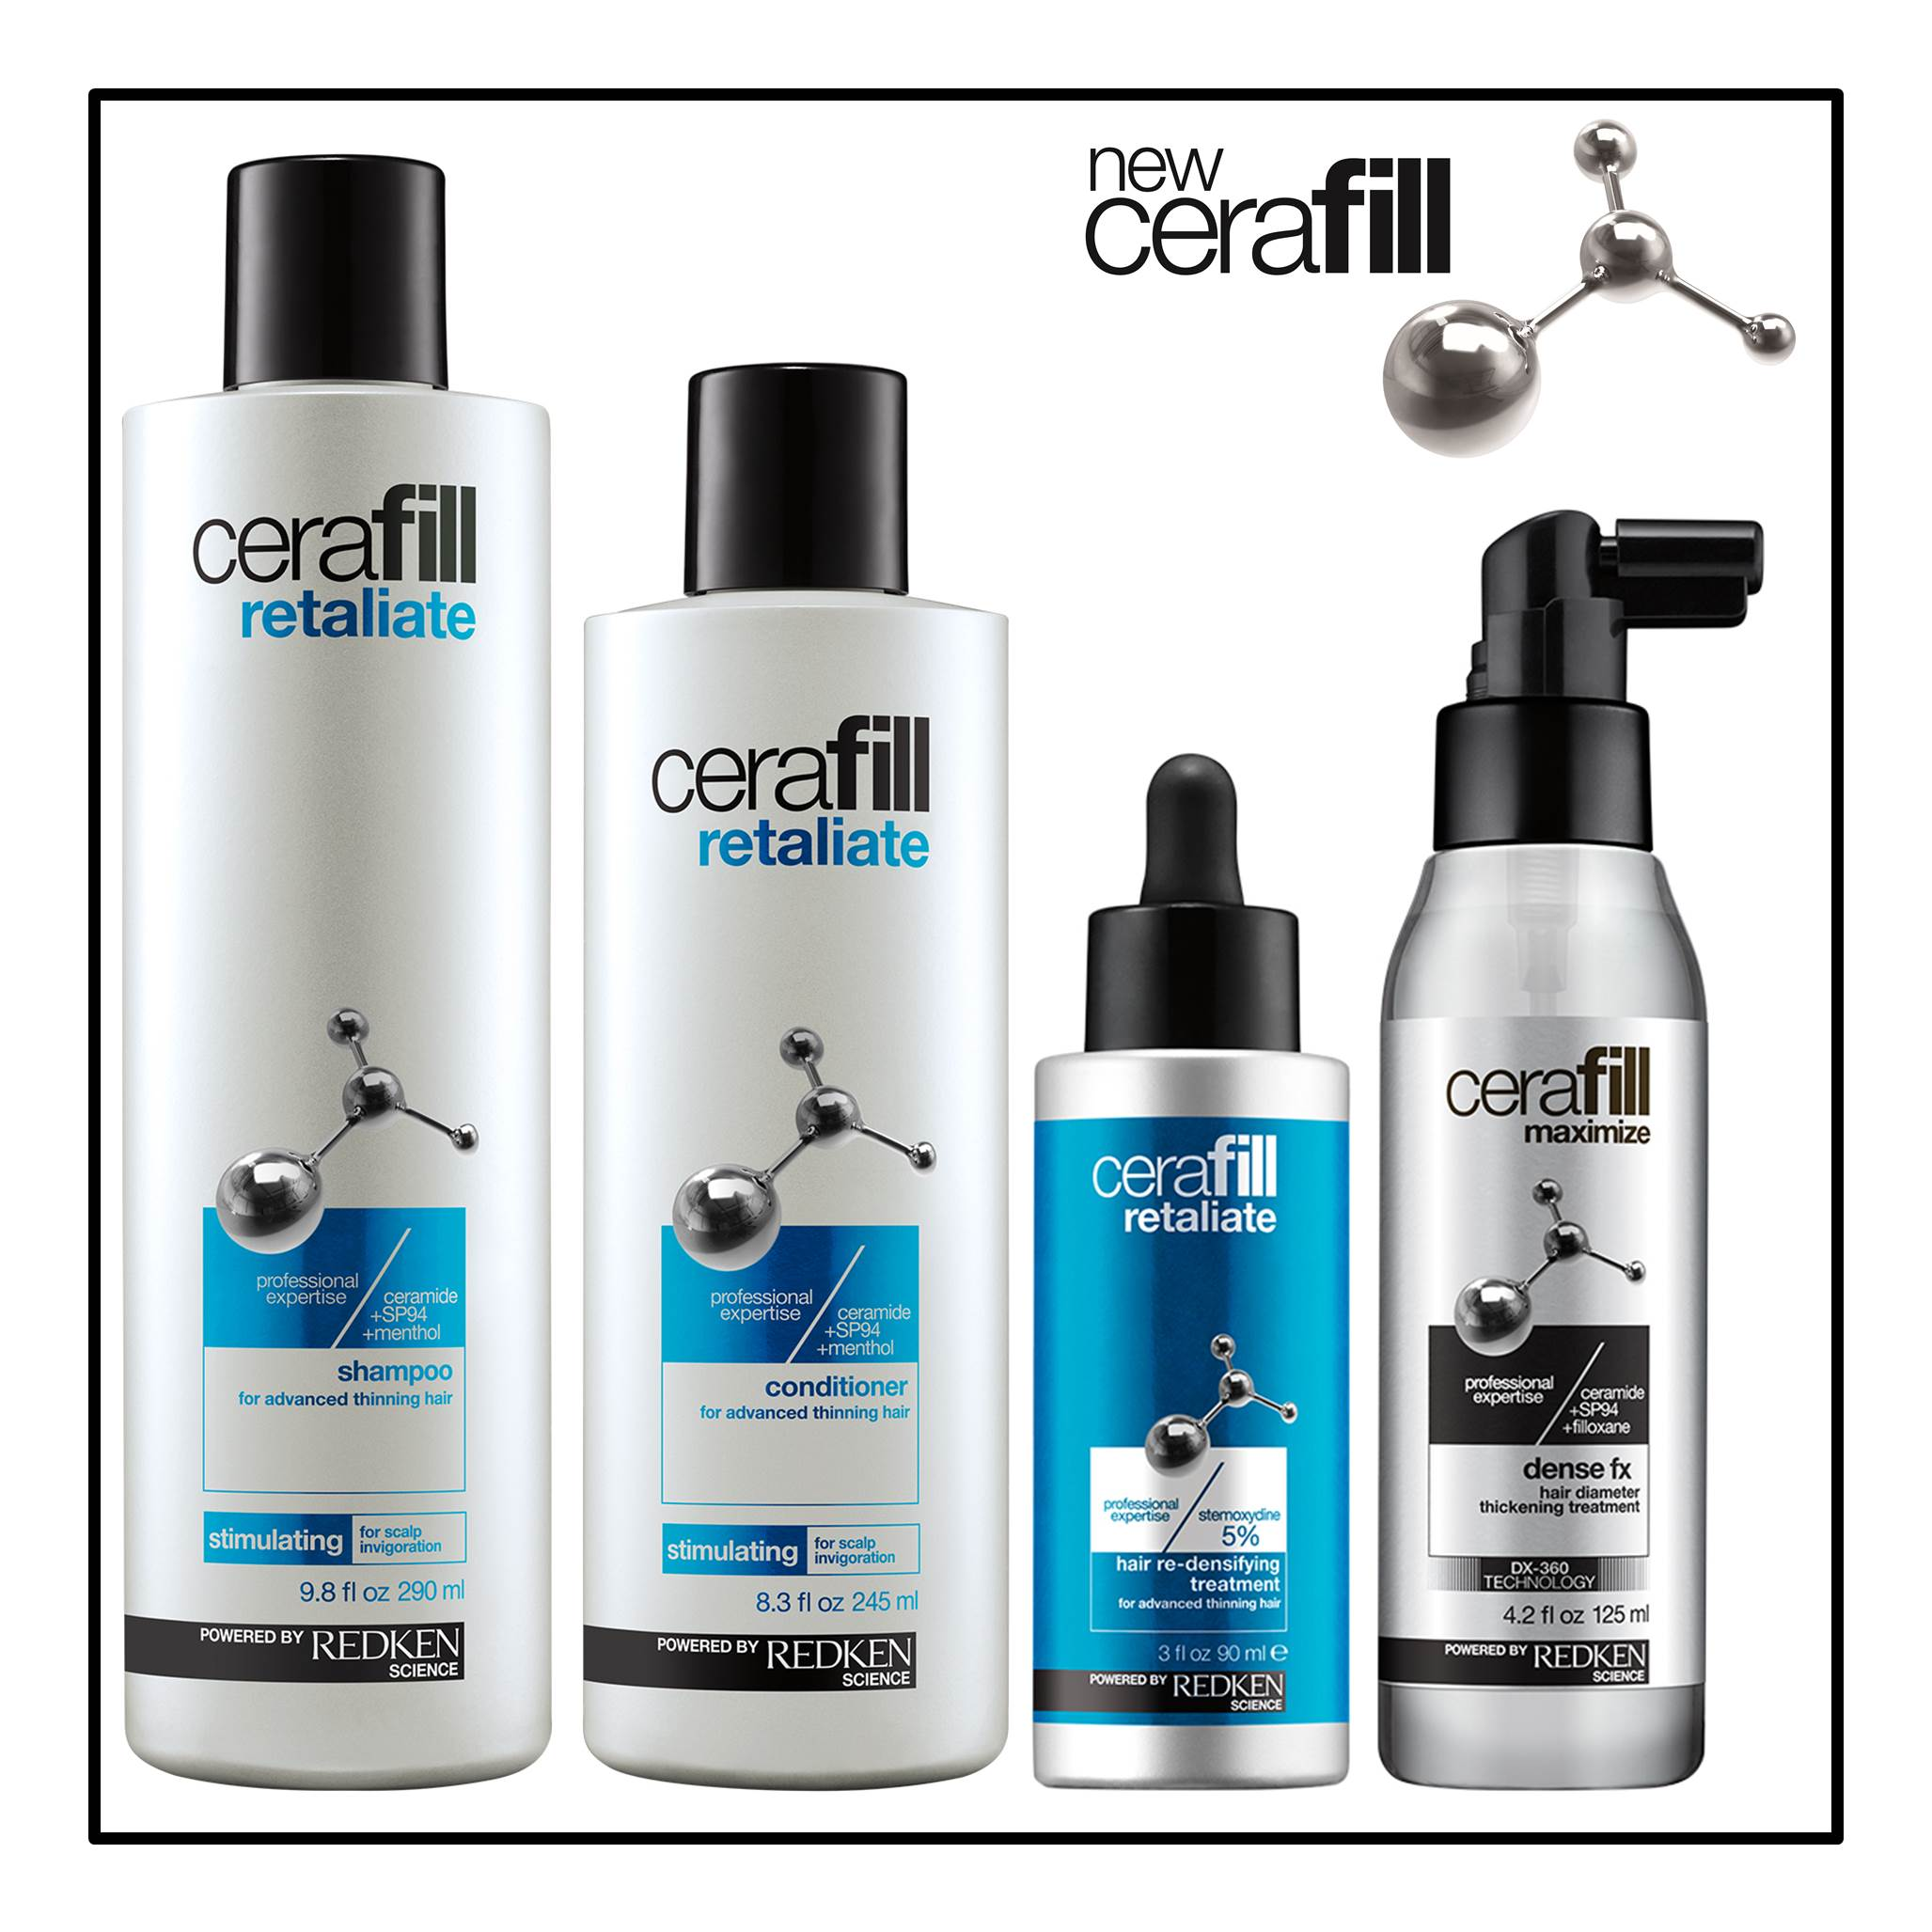 Musette Brenna Paterson writes about Redken Cerafill & the battle against thinning hair.